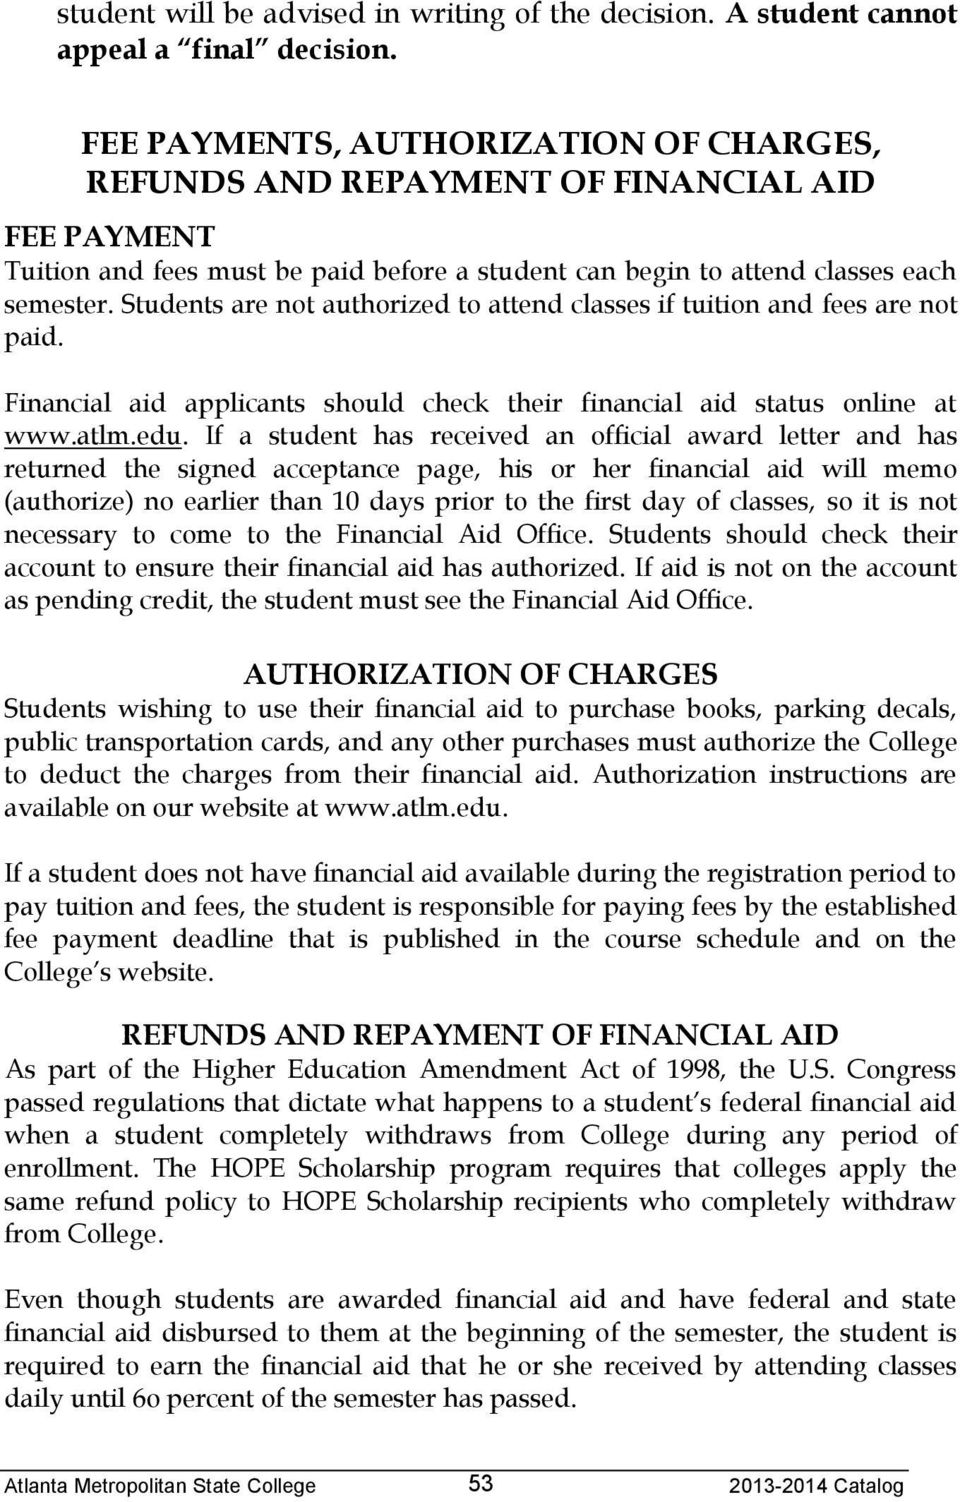 Students are not authorized to attend classes if tuition and fees are not paid. Financial aid applicants should check their financial aid status online at www.atlm.edu.